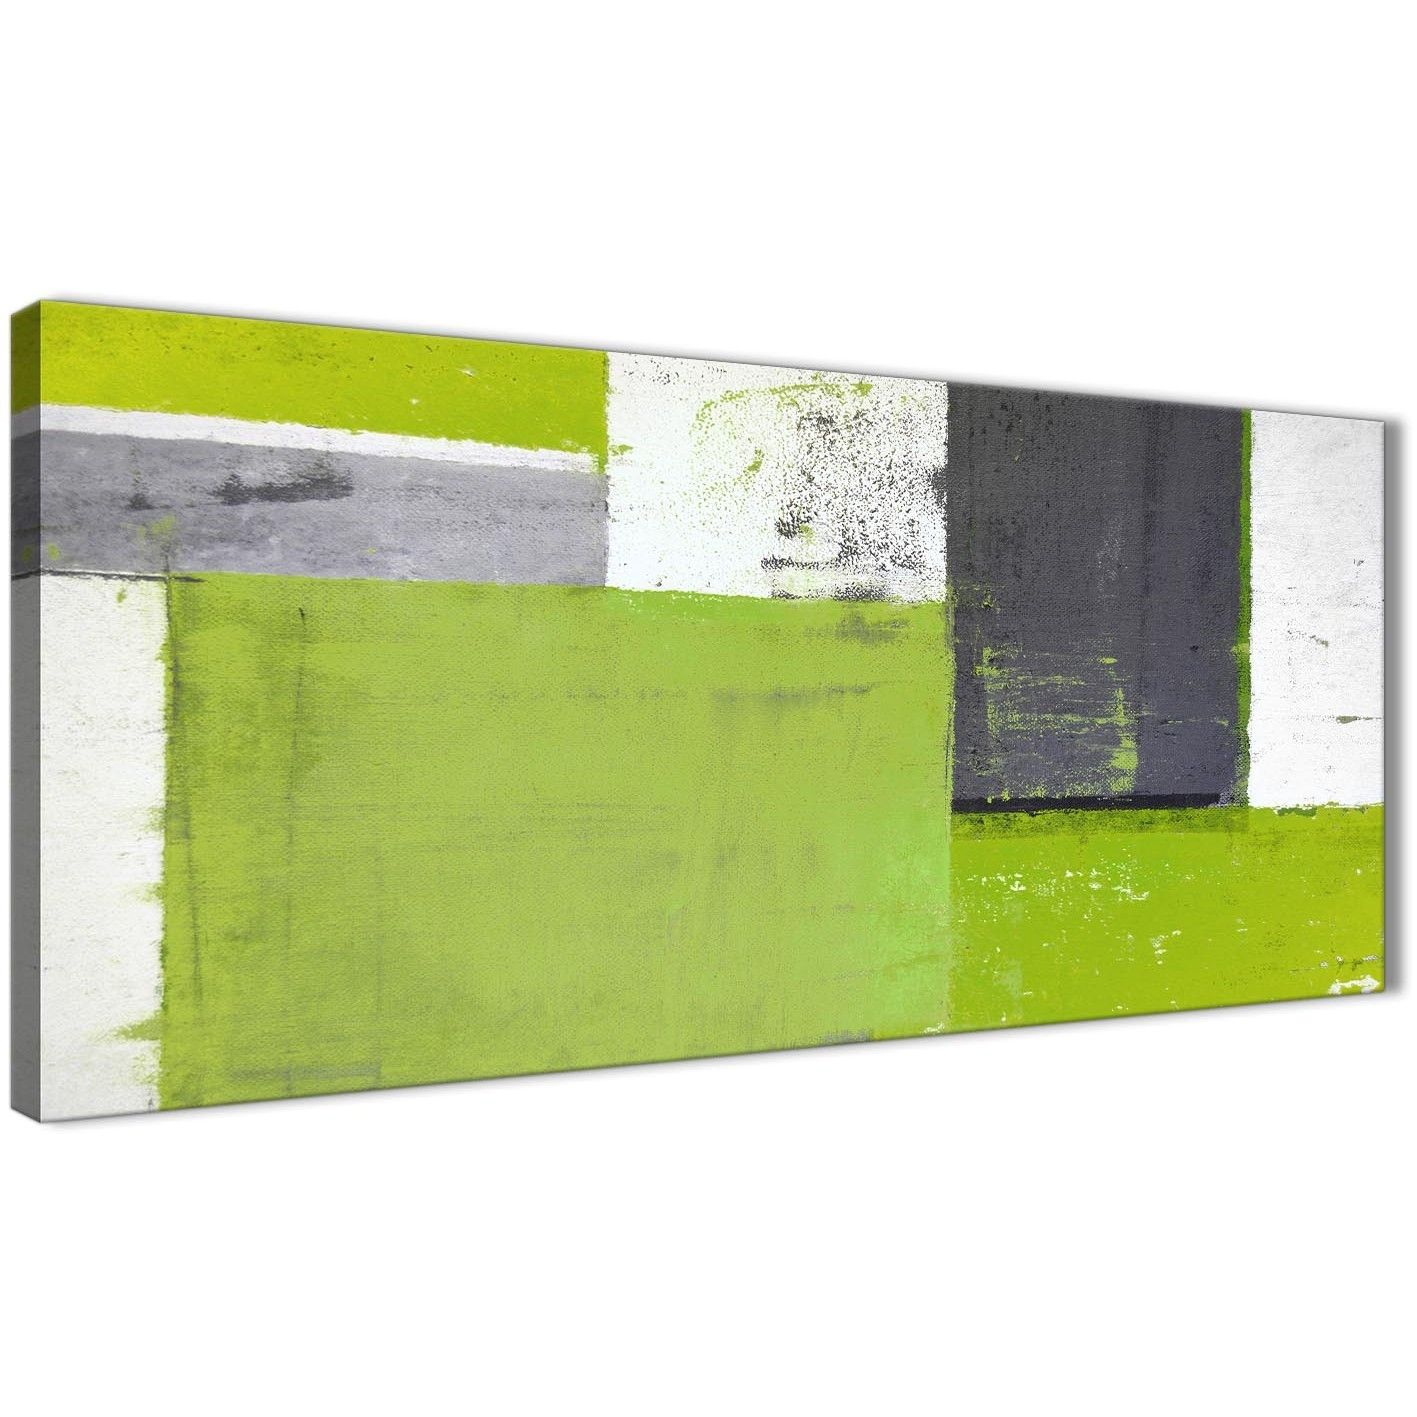 Lime Green Grey Abstract Painting Canvas Wall Art Print – Modern With Regard To Current Lime Green Abstract Wall Art (Gallery 2 of 20)